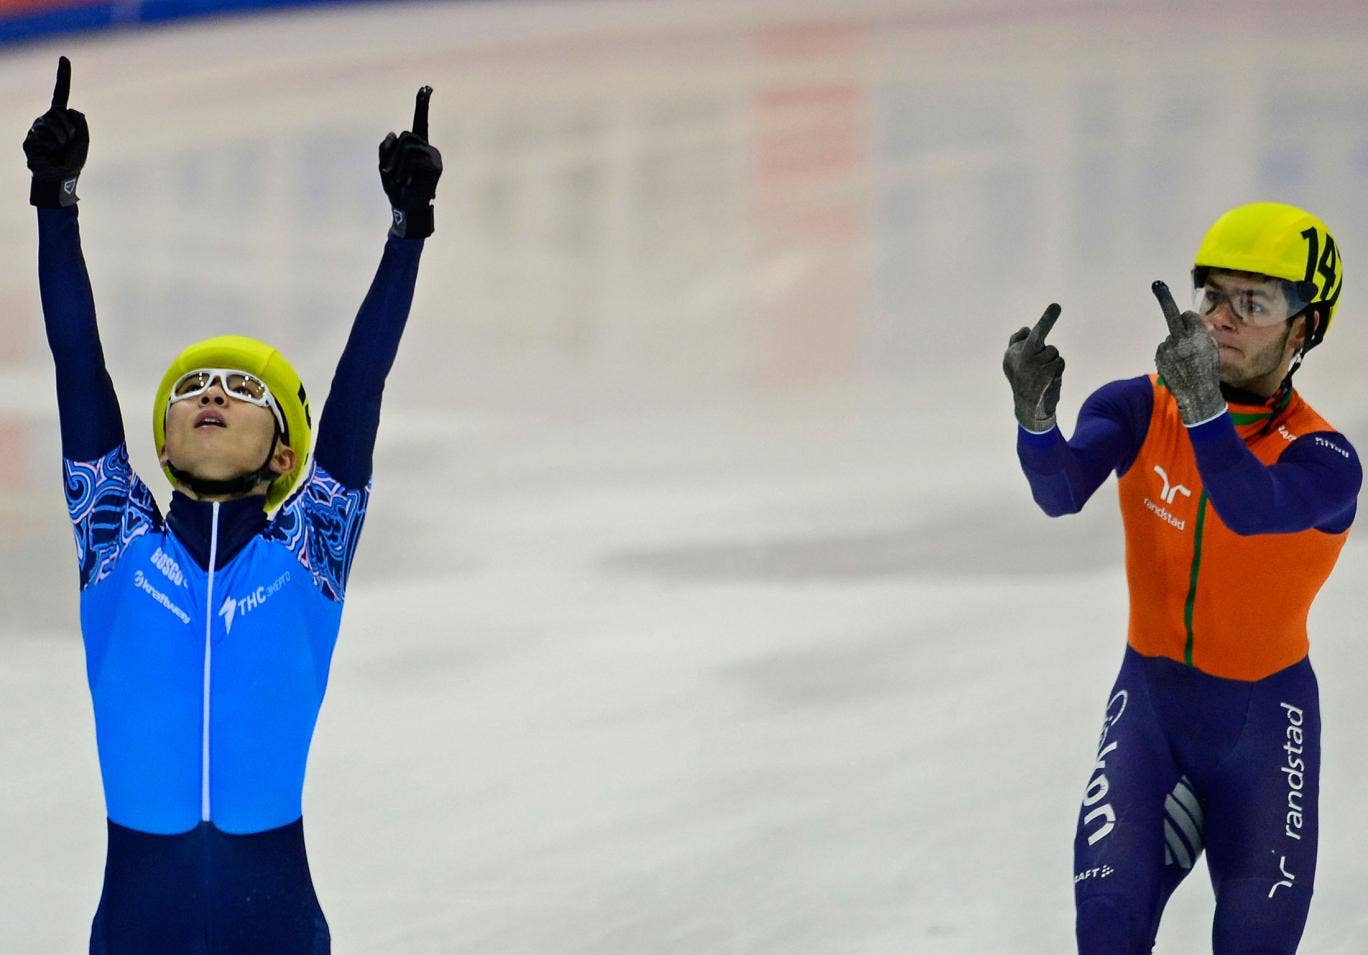 Sjinkie Knegt (R) of the Netherlands' team gestures next to Victor An (L) of the team of Russia celebrating after Russia won the men's 5000m relay final race of the ISU European Short Track speed skating Championships in Dresden, eastern Germany, on Janua